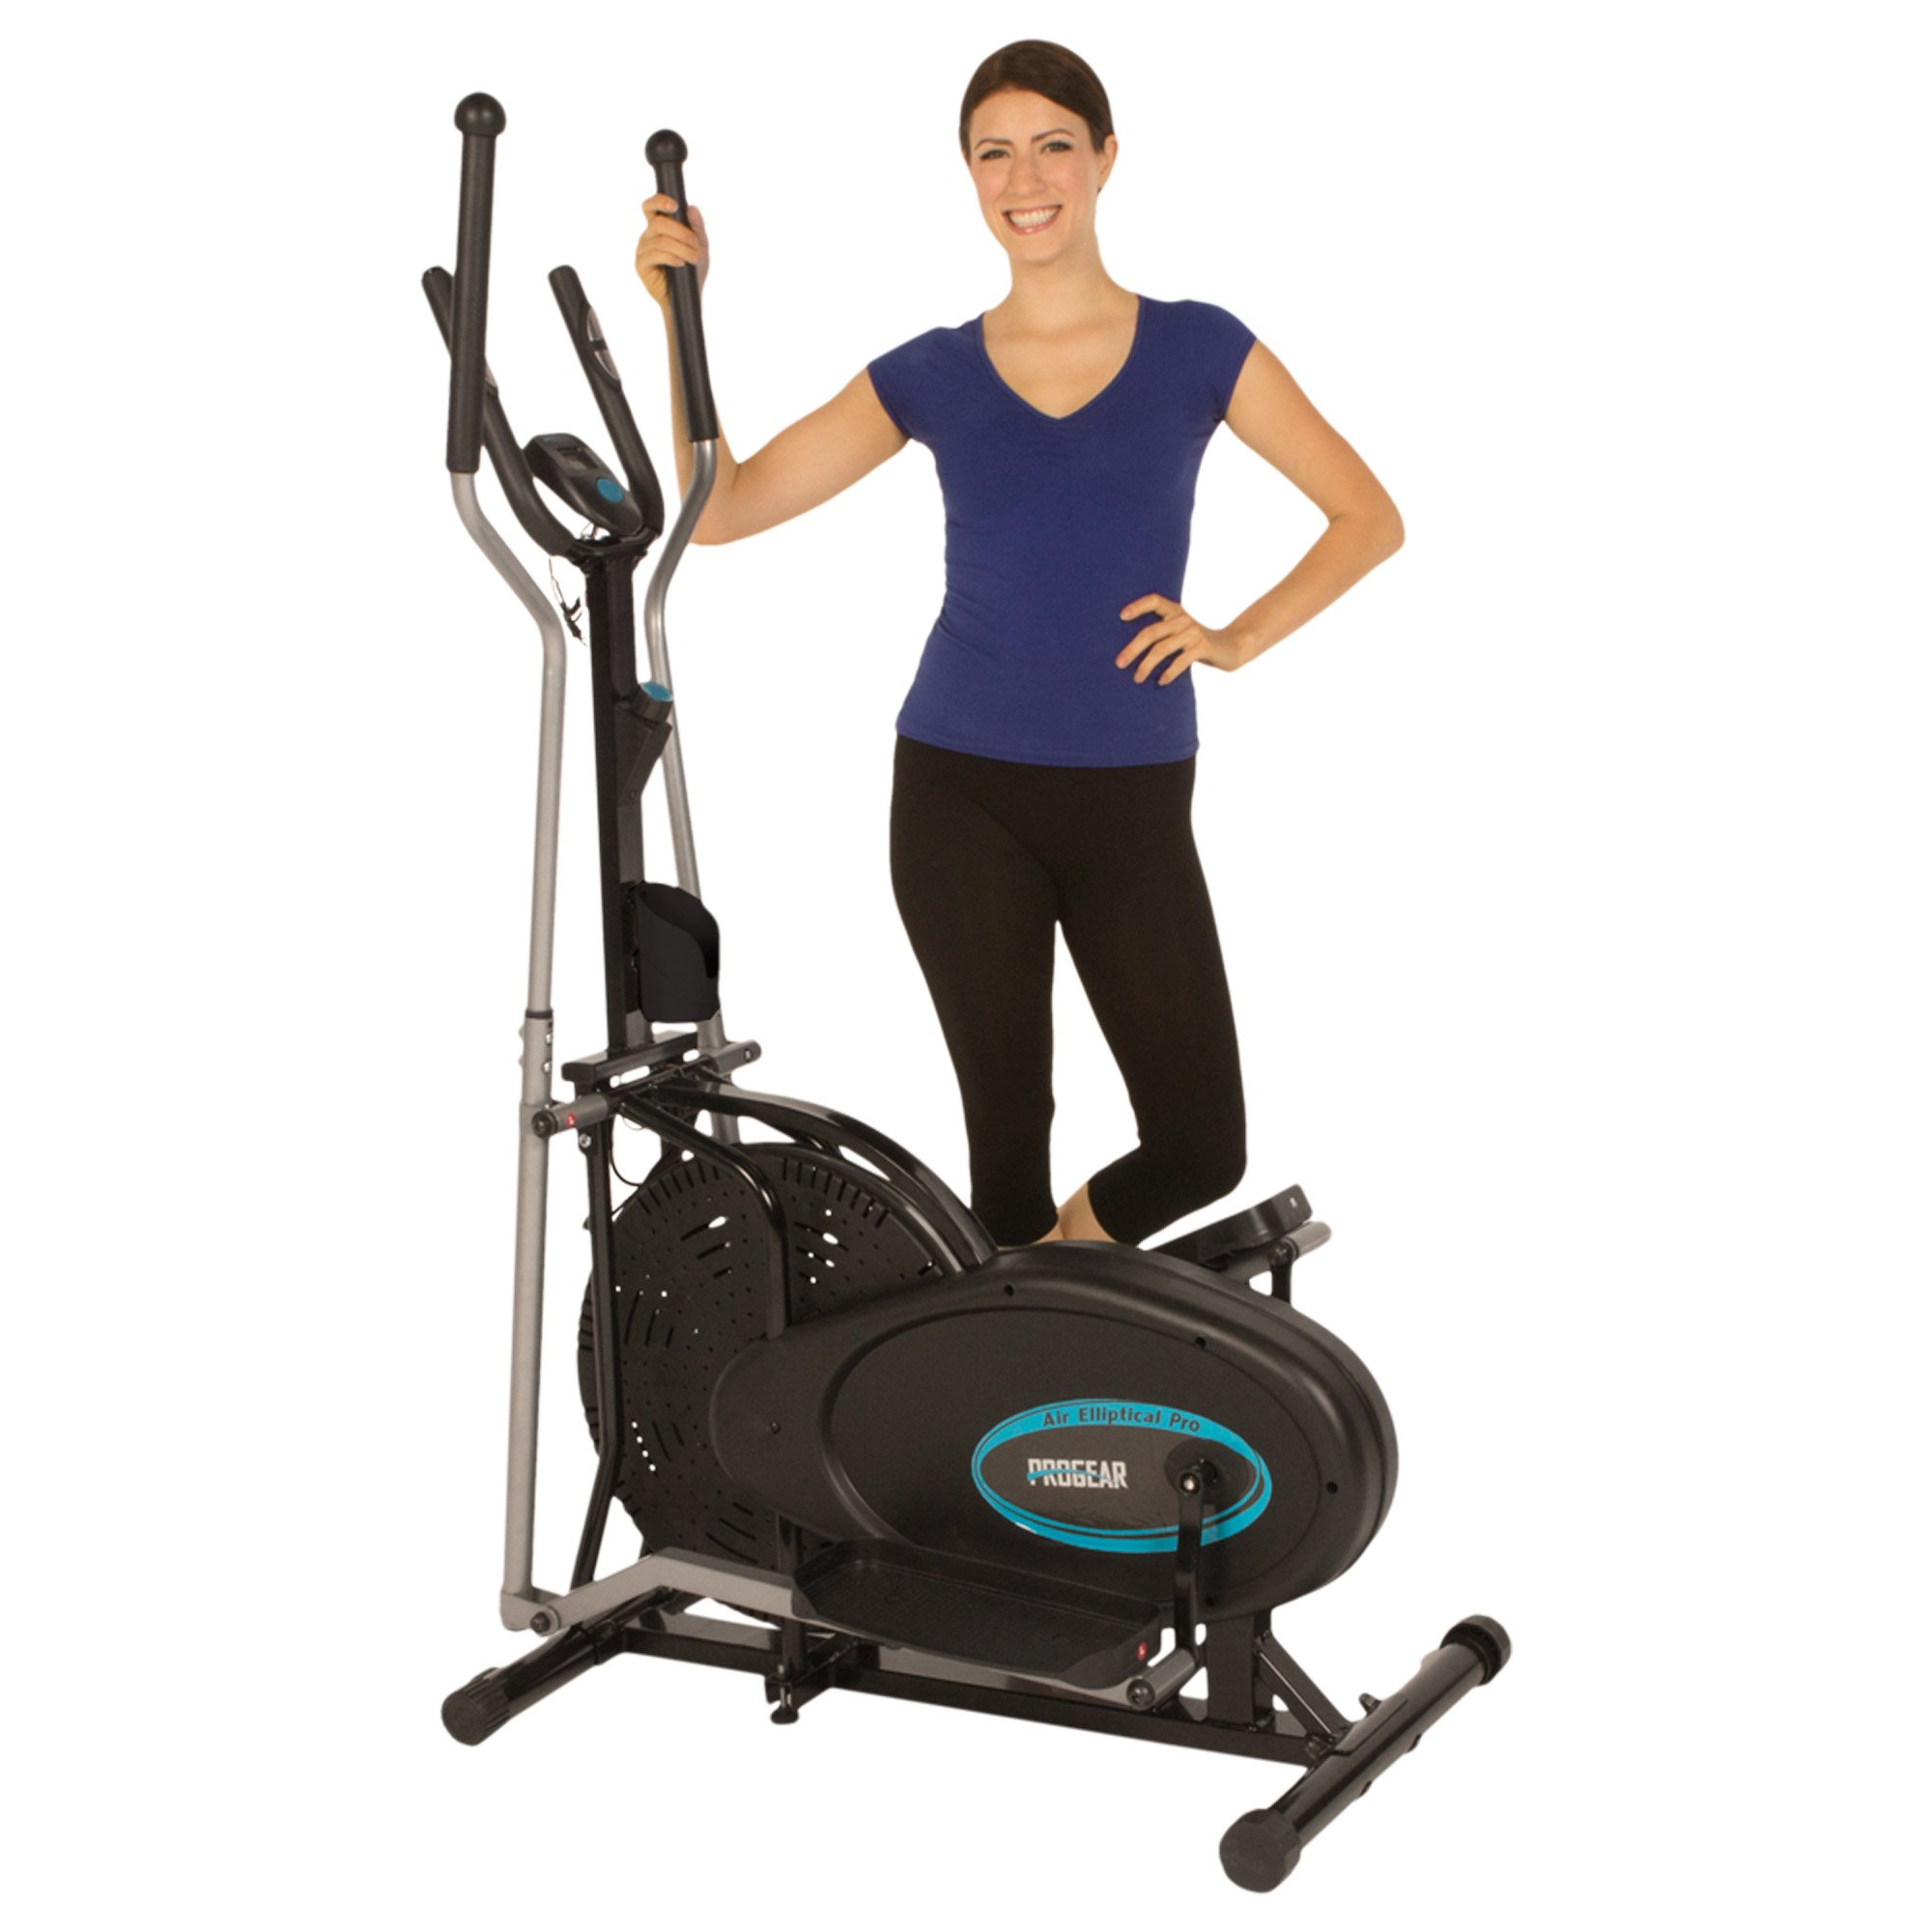 Elliptical Exercise Indoor Gym Equipment Fitness Trainer